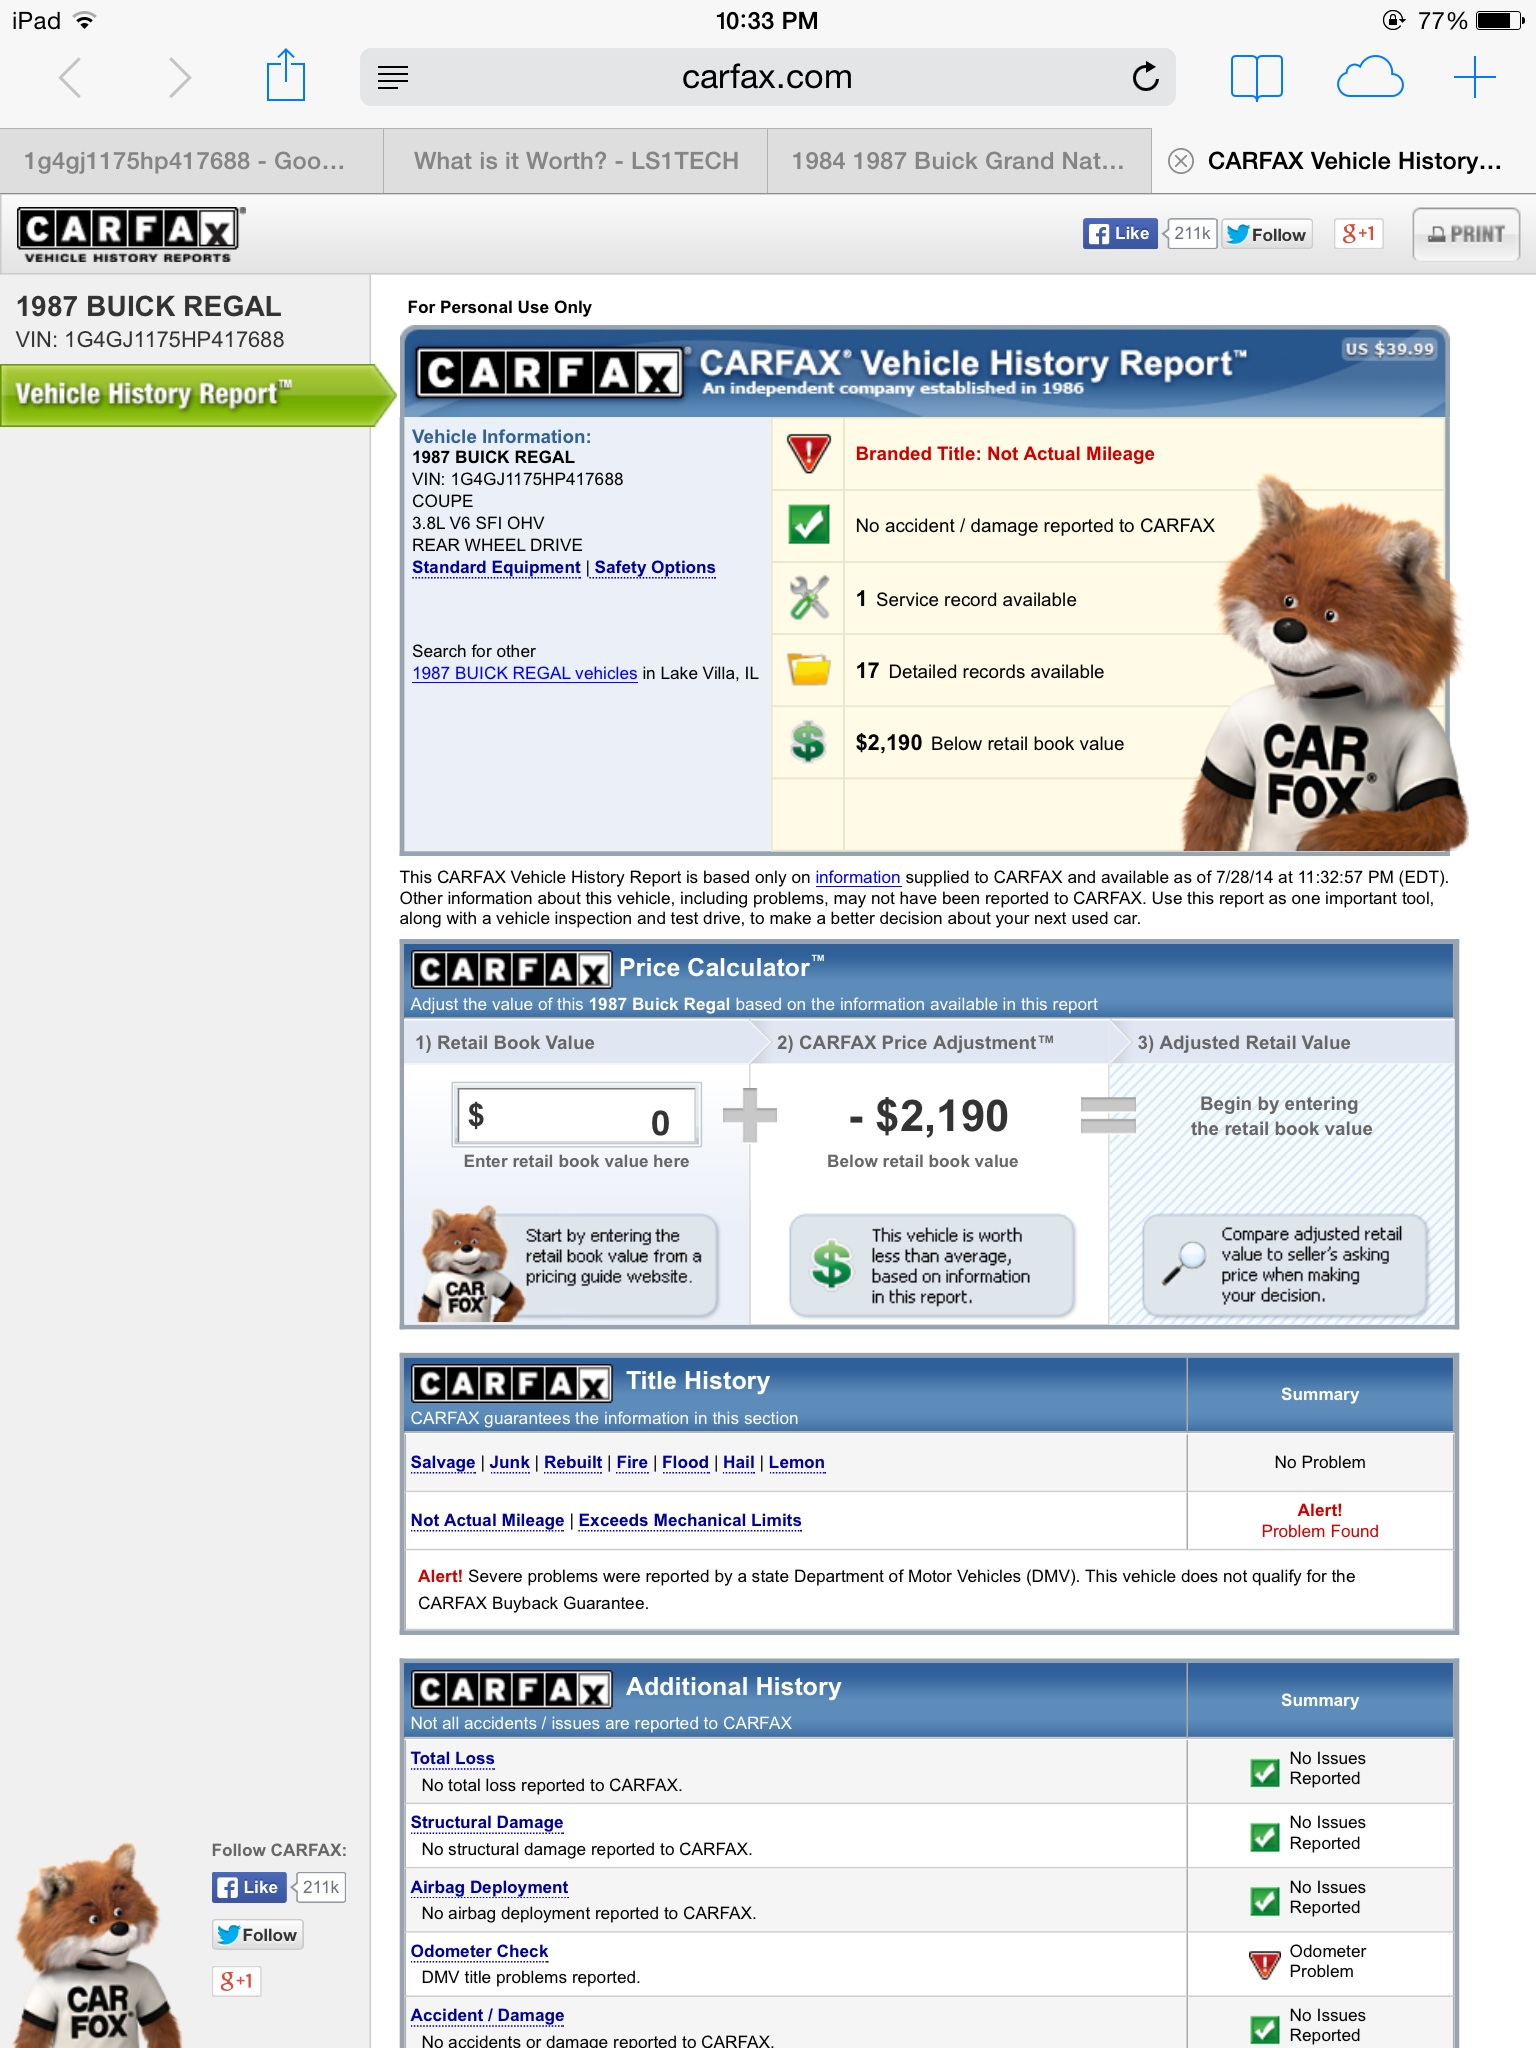 Share Carfax Inspirational Carfax Says Branded Title Not Actual Mileage Ls1tech